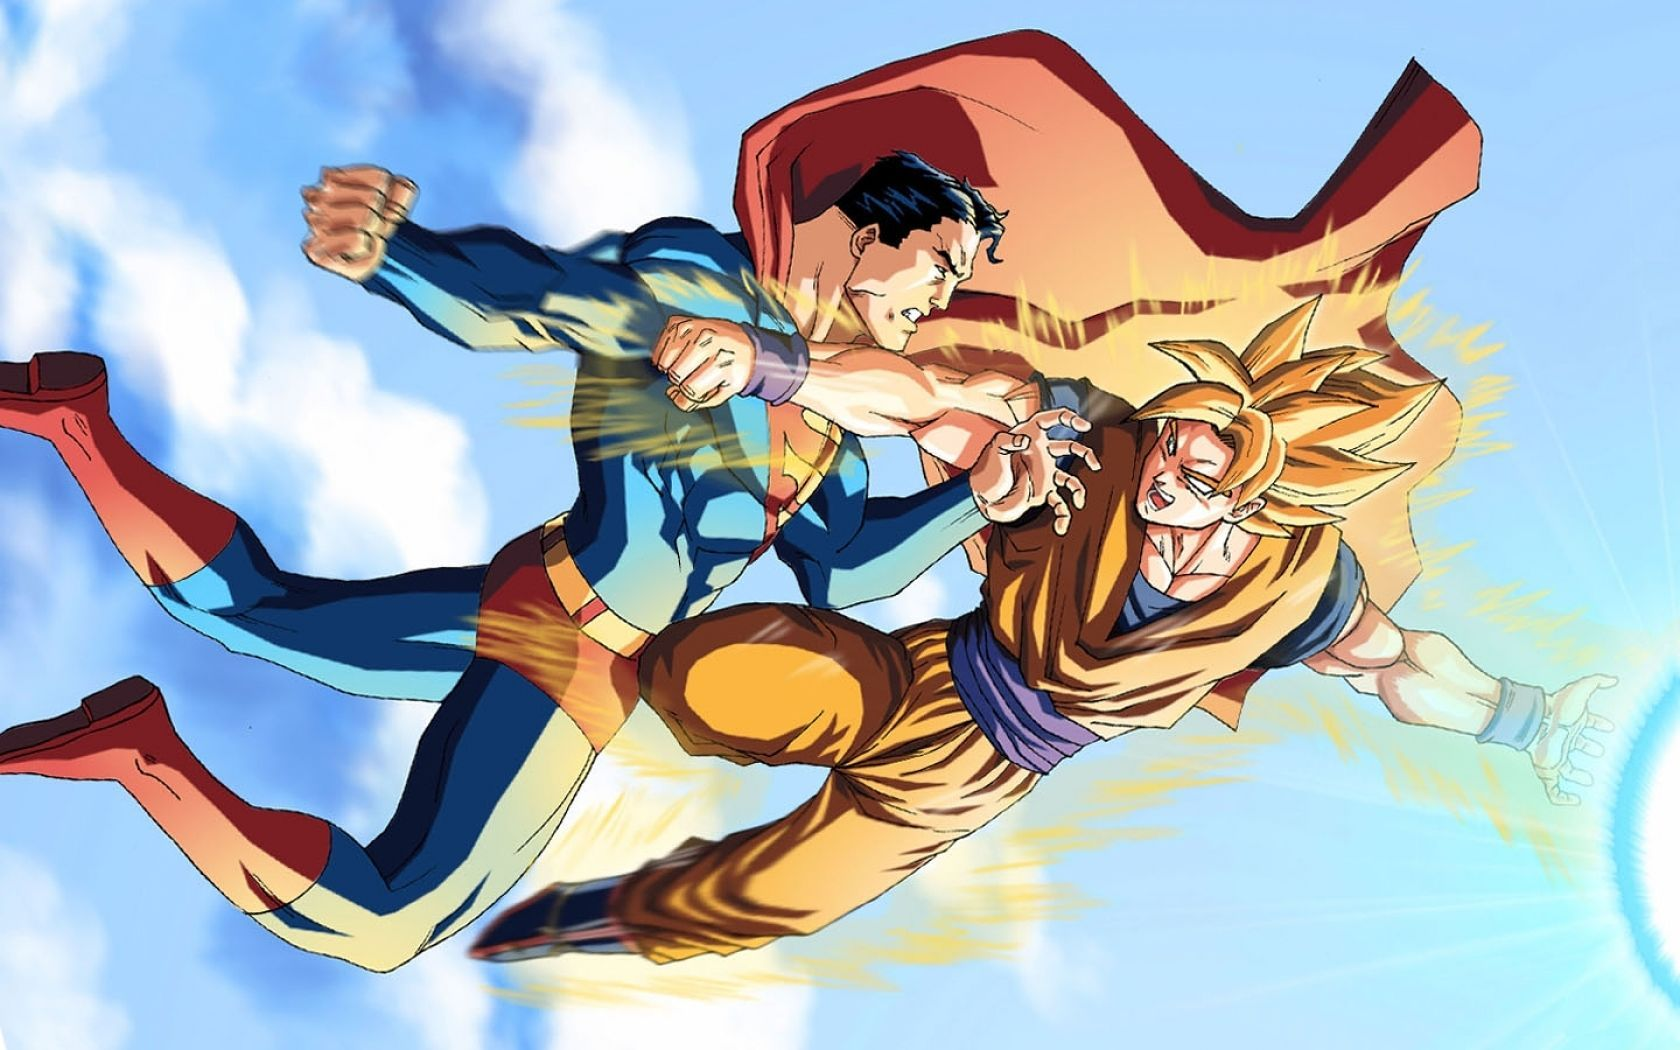 Who Will Win Superman Or Goku